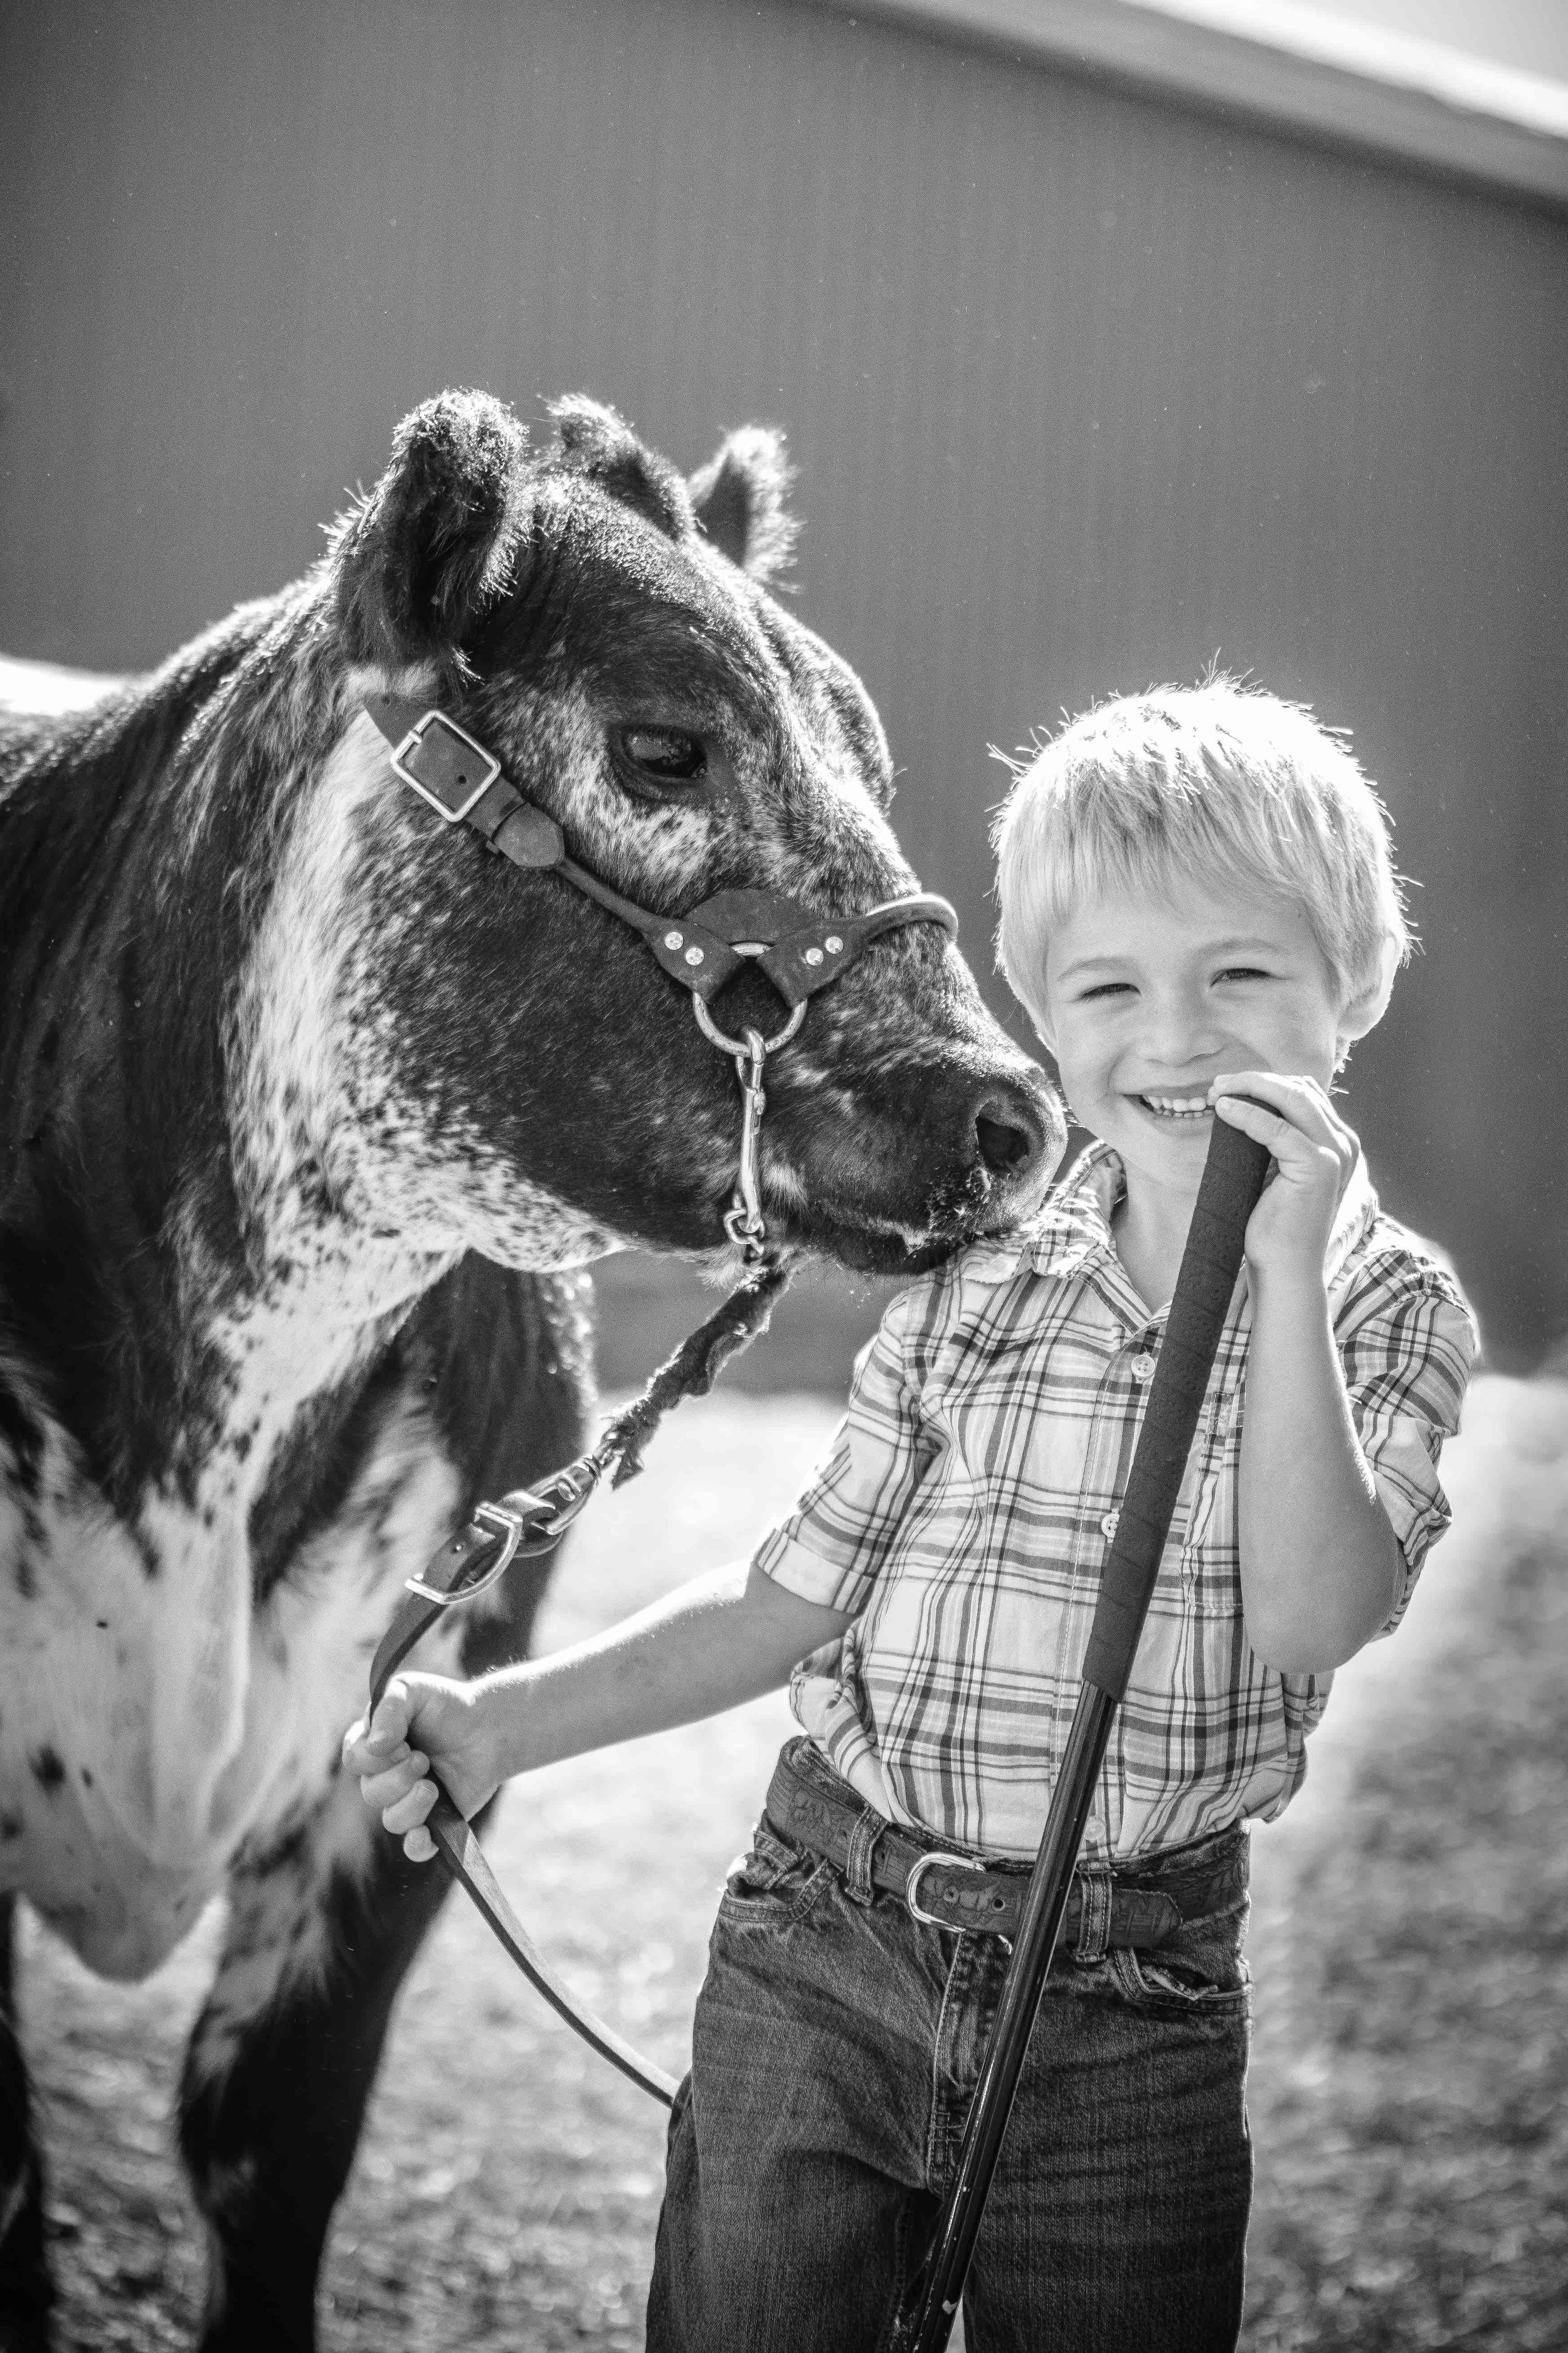 Jodie-Aldred-Photography-Chatham-Kent-Elgin-Middlesex-London-Ontario-Farm-Family-Ontario-Cattle.jpg